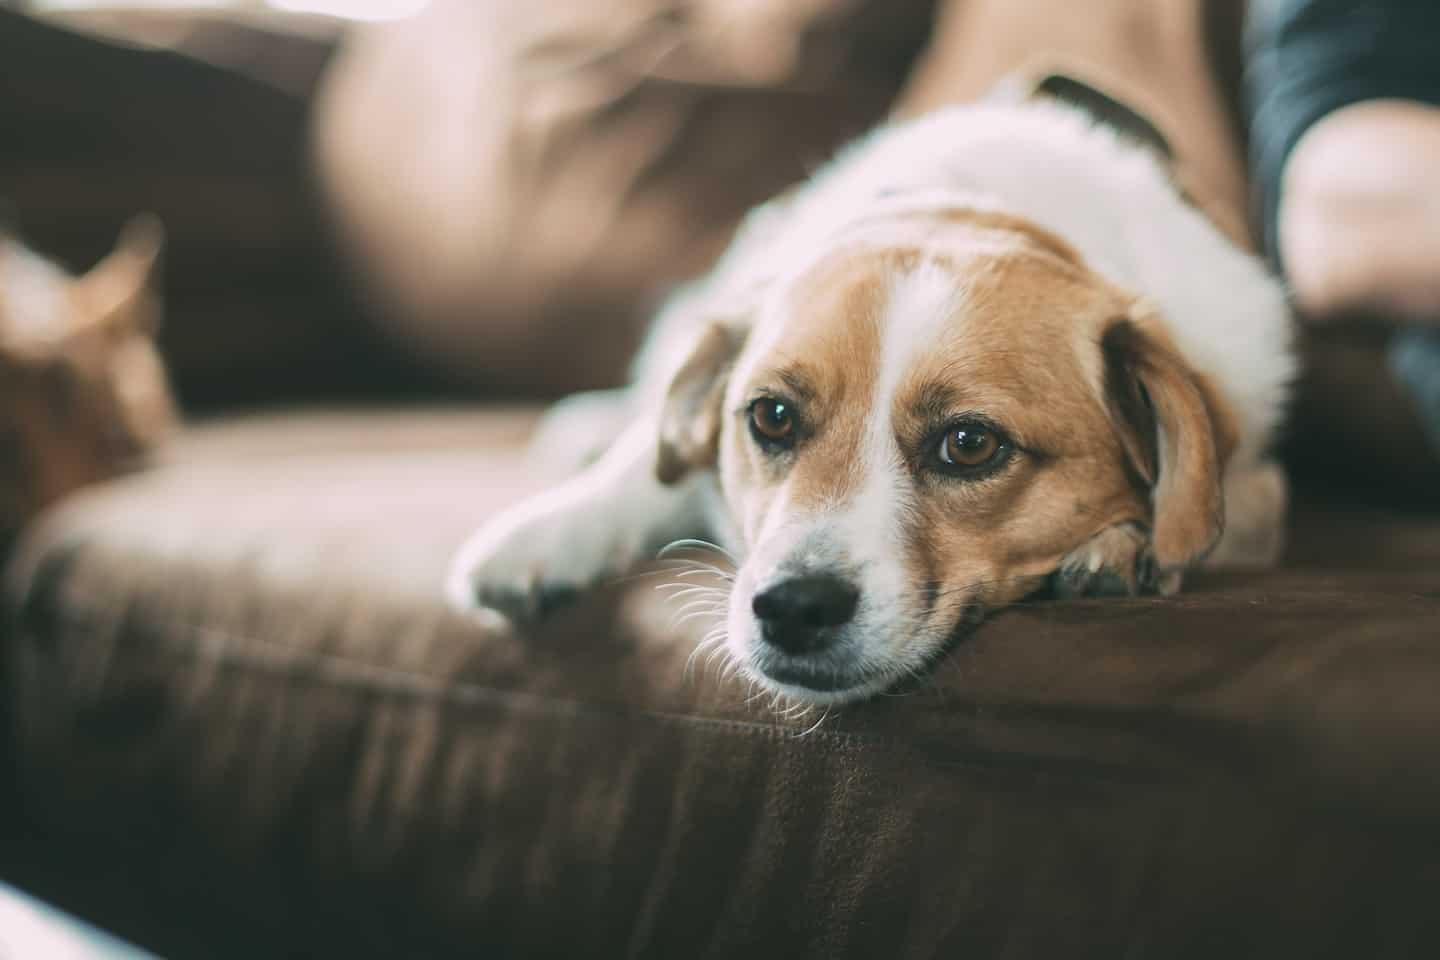 The Ultimate Guide to Renting With a Dog In London - Dog and Owner on the sofa